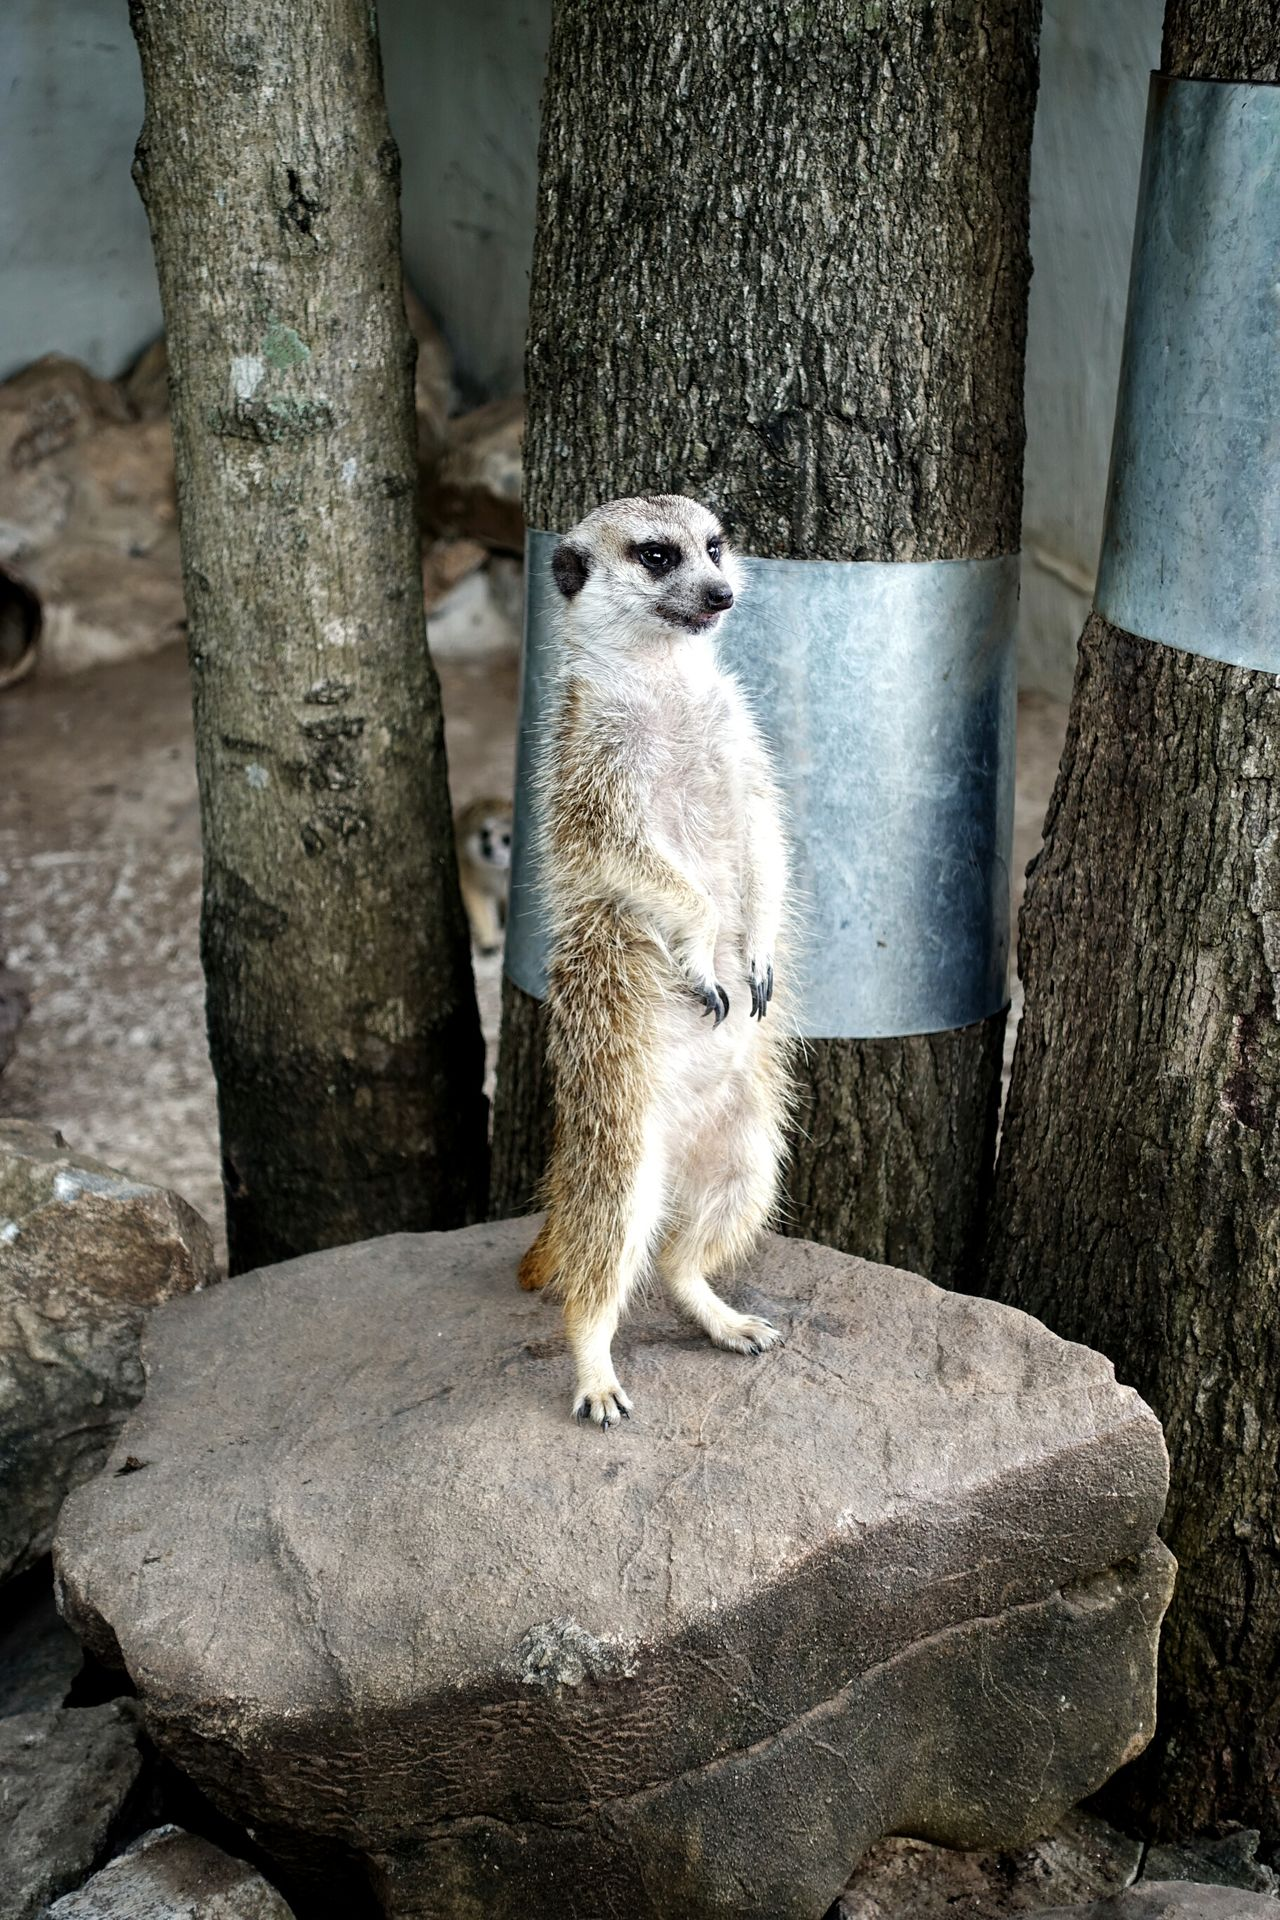 Animal Themes One Animal Animals In The Wild Animal WildlifeTree Trunk Outdoors Mammal No People Meerkat Nature Day